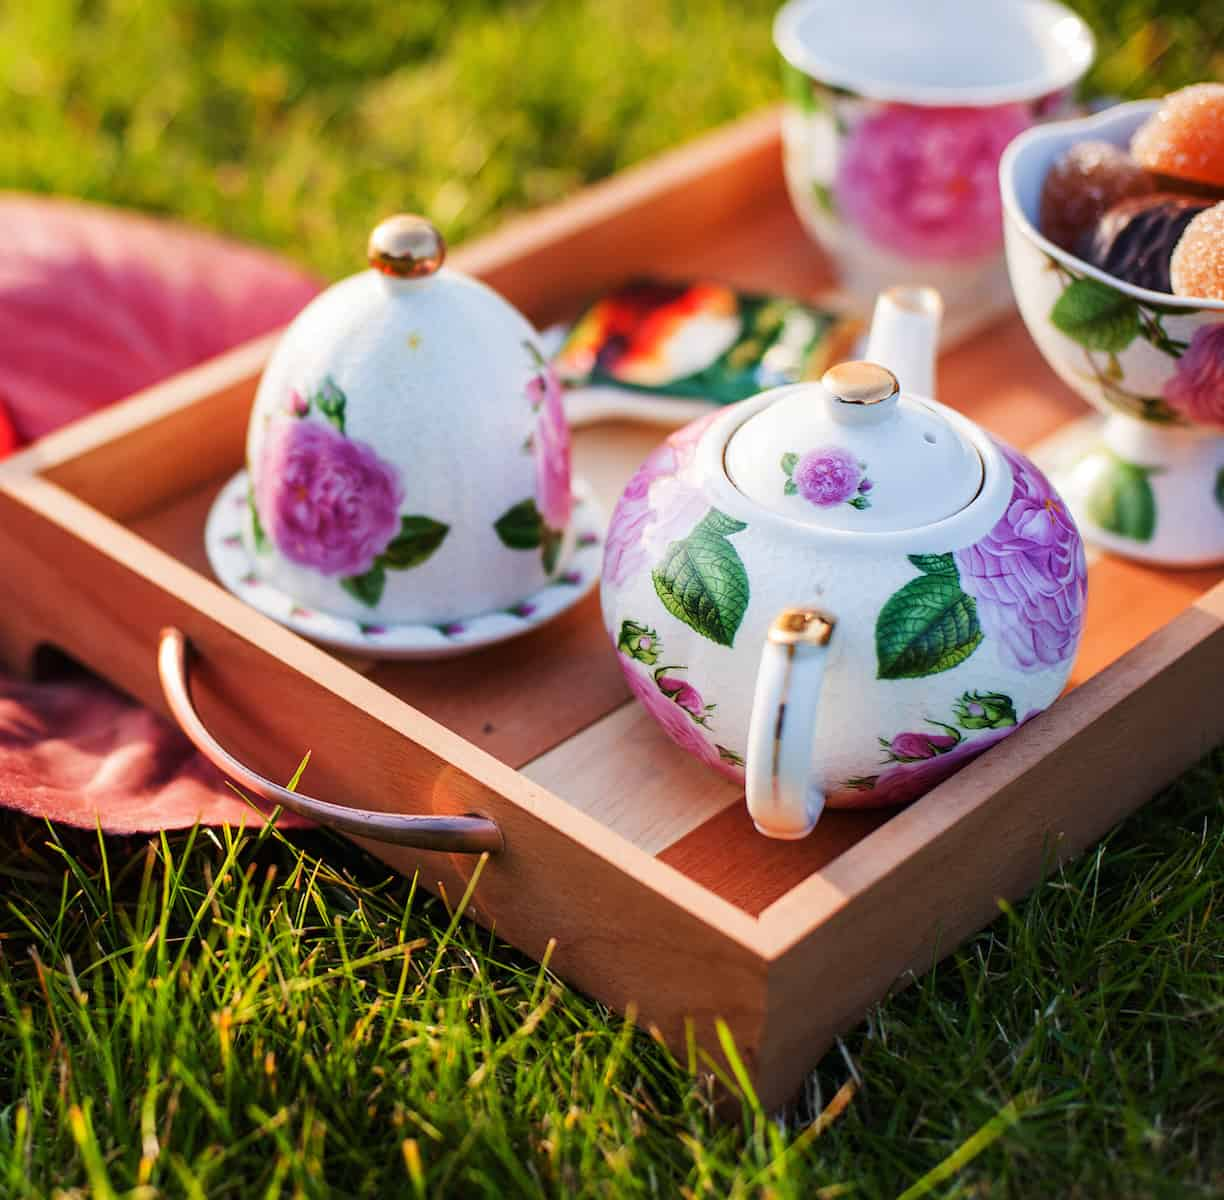 tea outside. teapot and tea cups in wooden tray outdoors